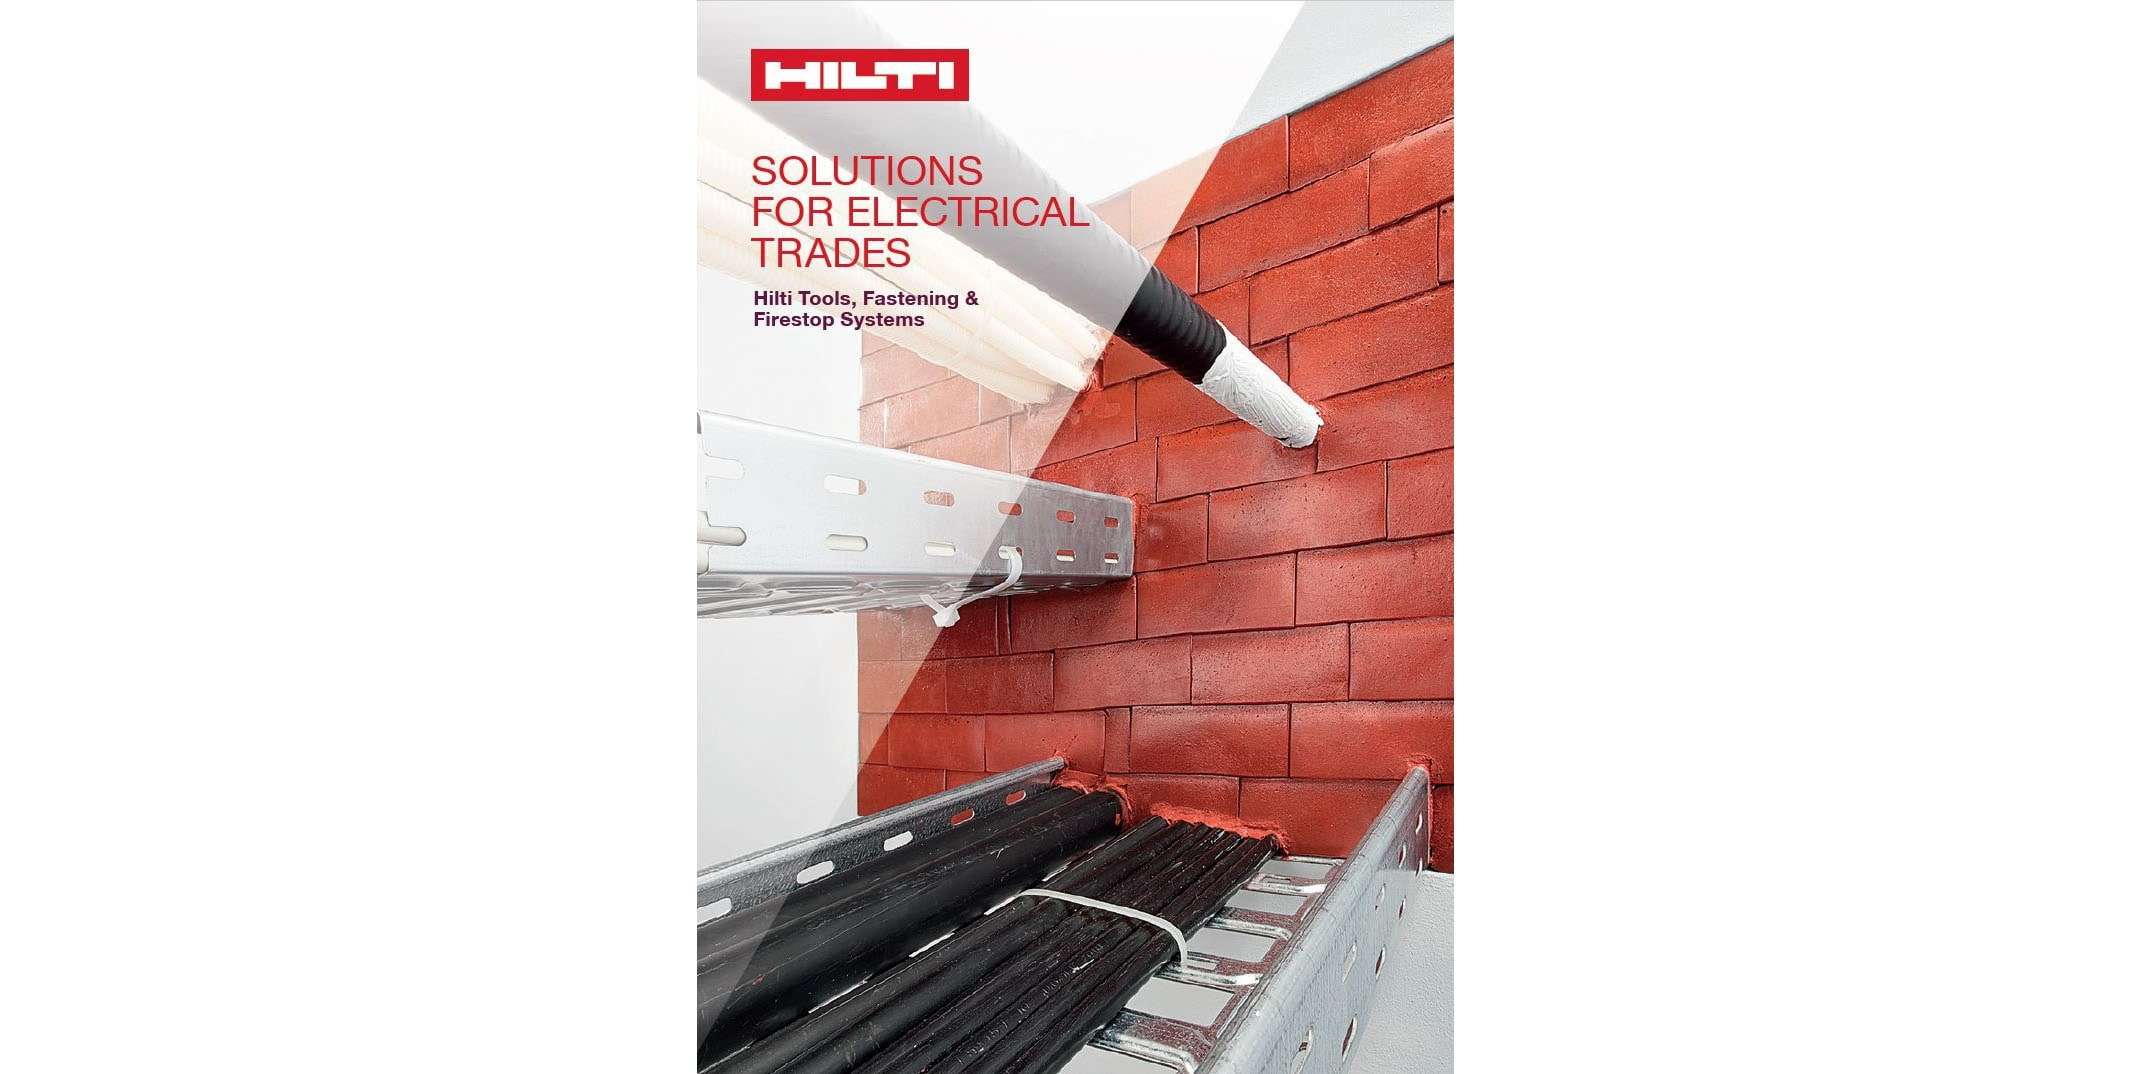 Hilti Solutions for Electrical Trades